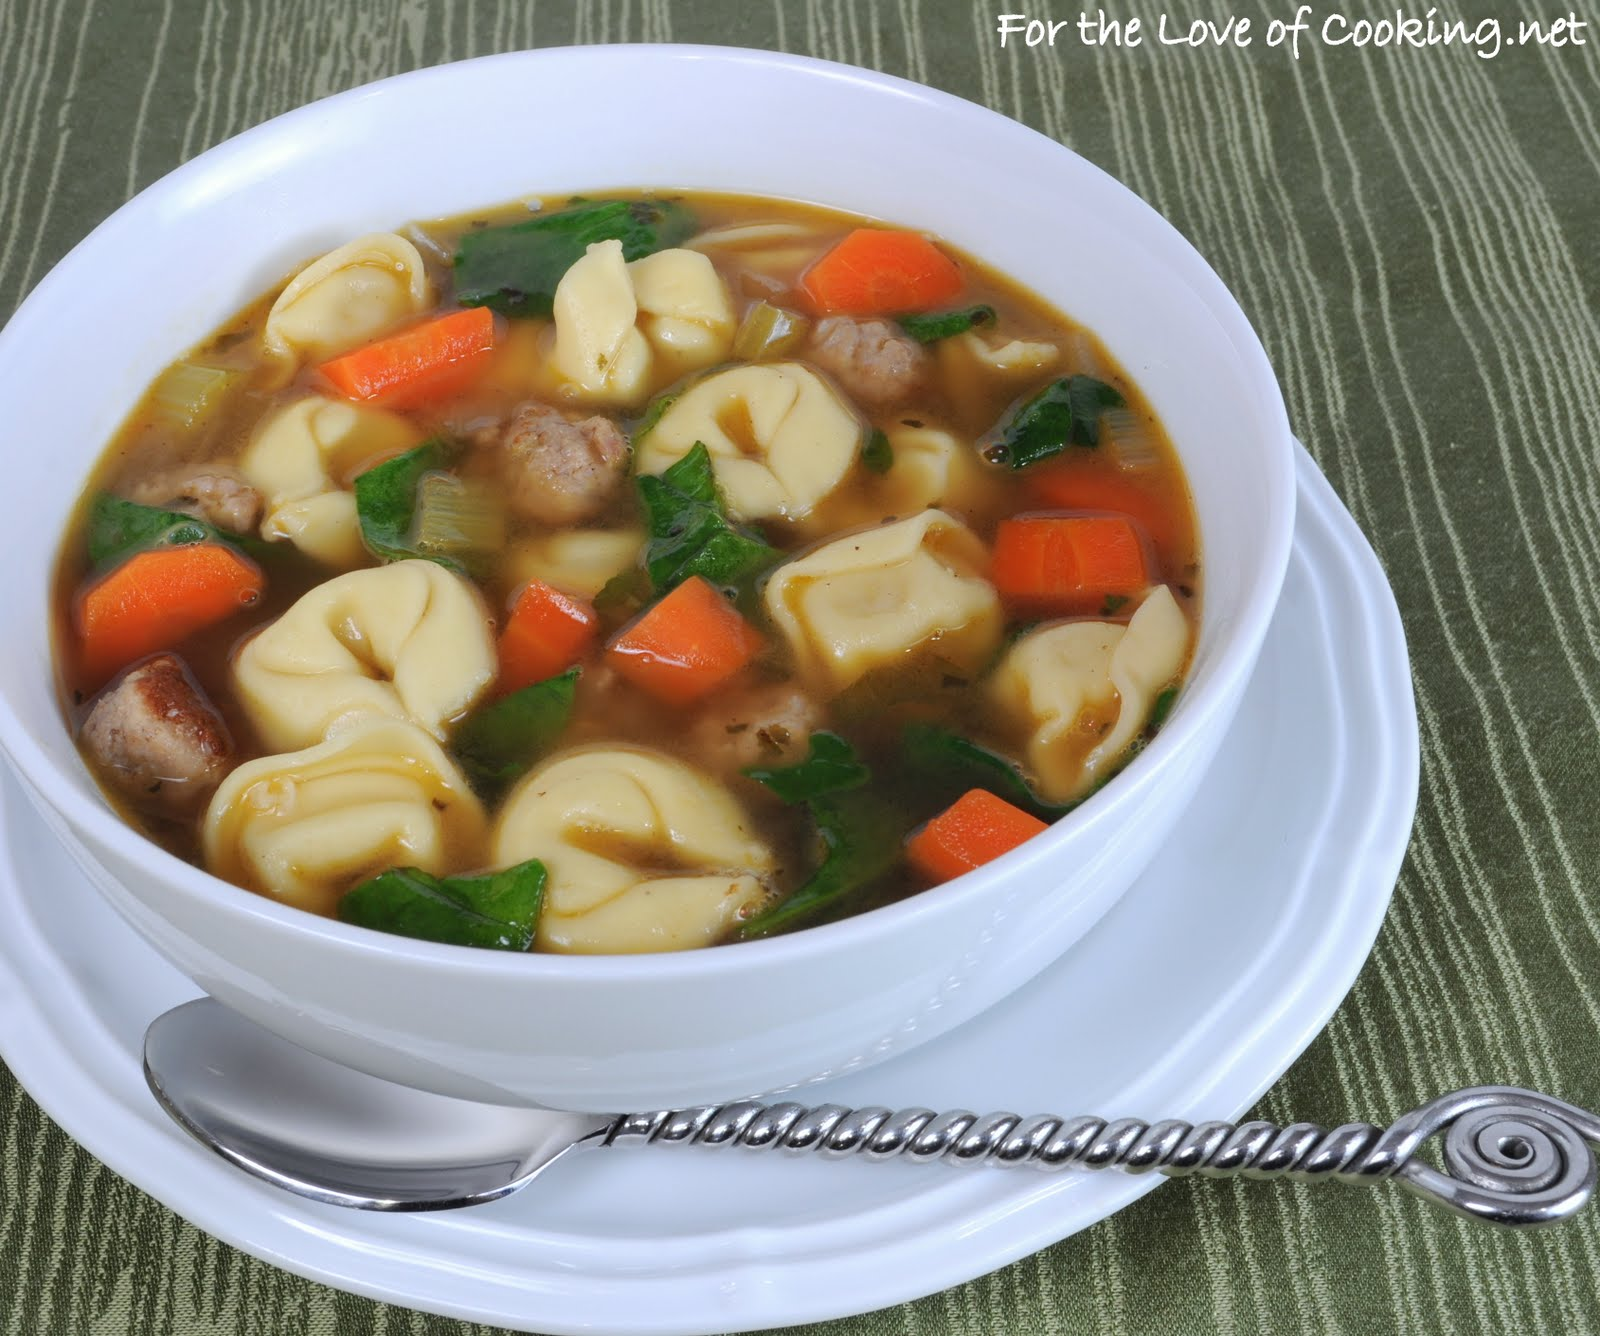 Turkey Italian Sausage and Cheese Tortellini Soup | For the Love of ...